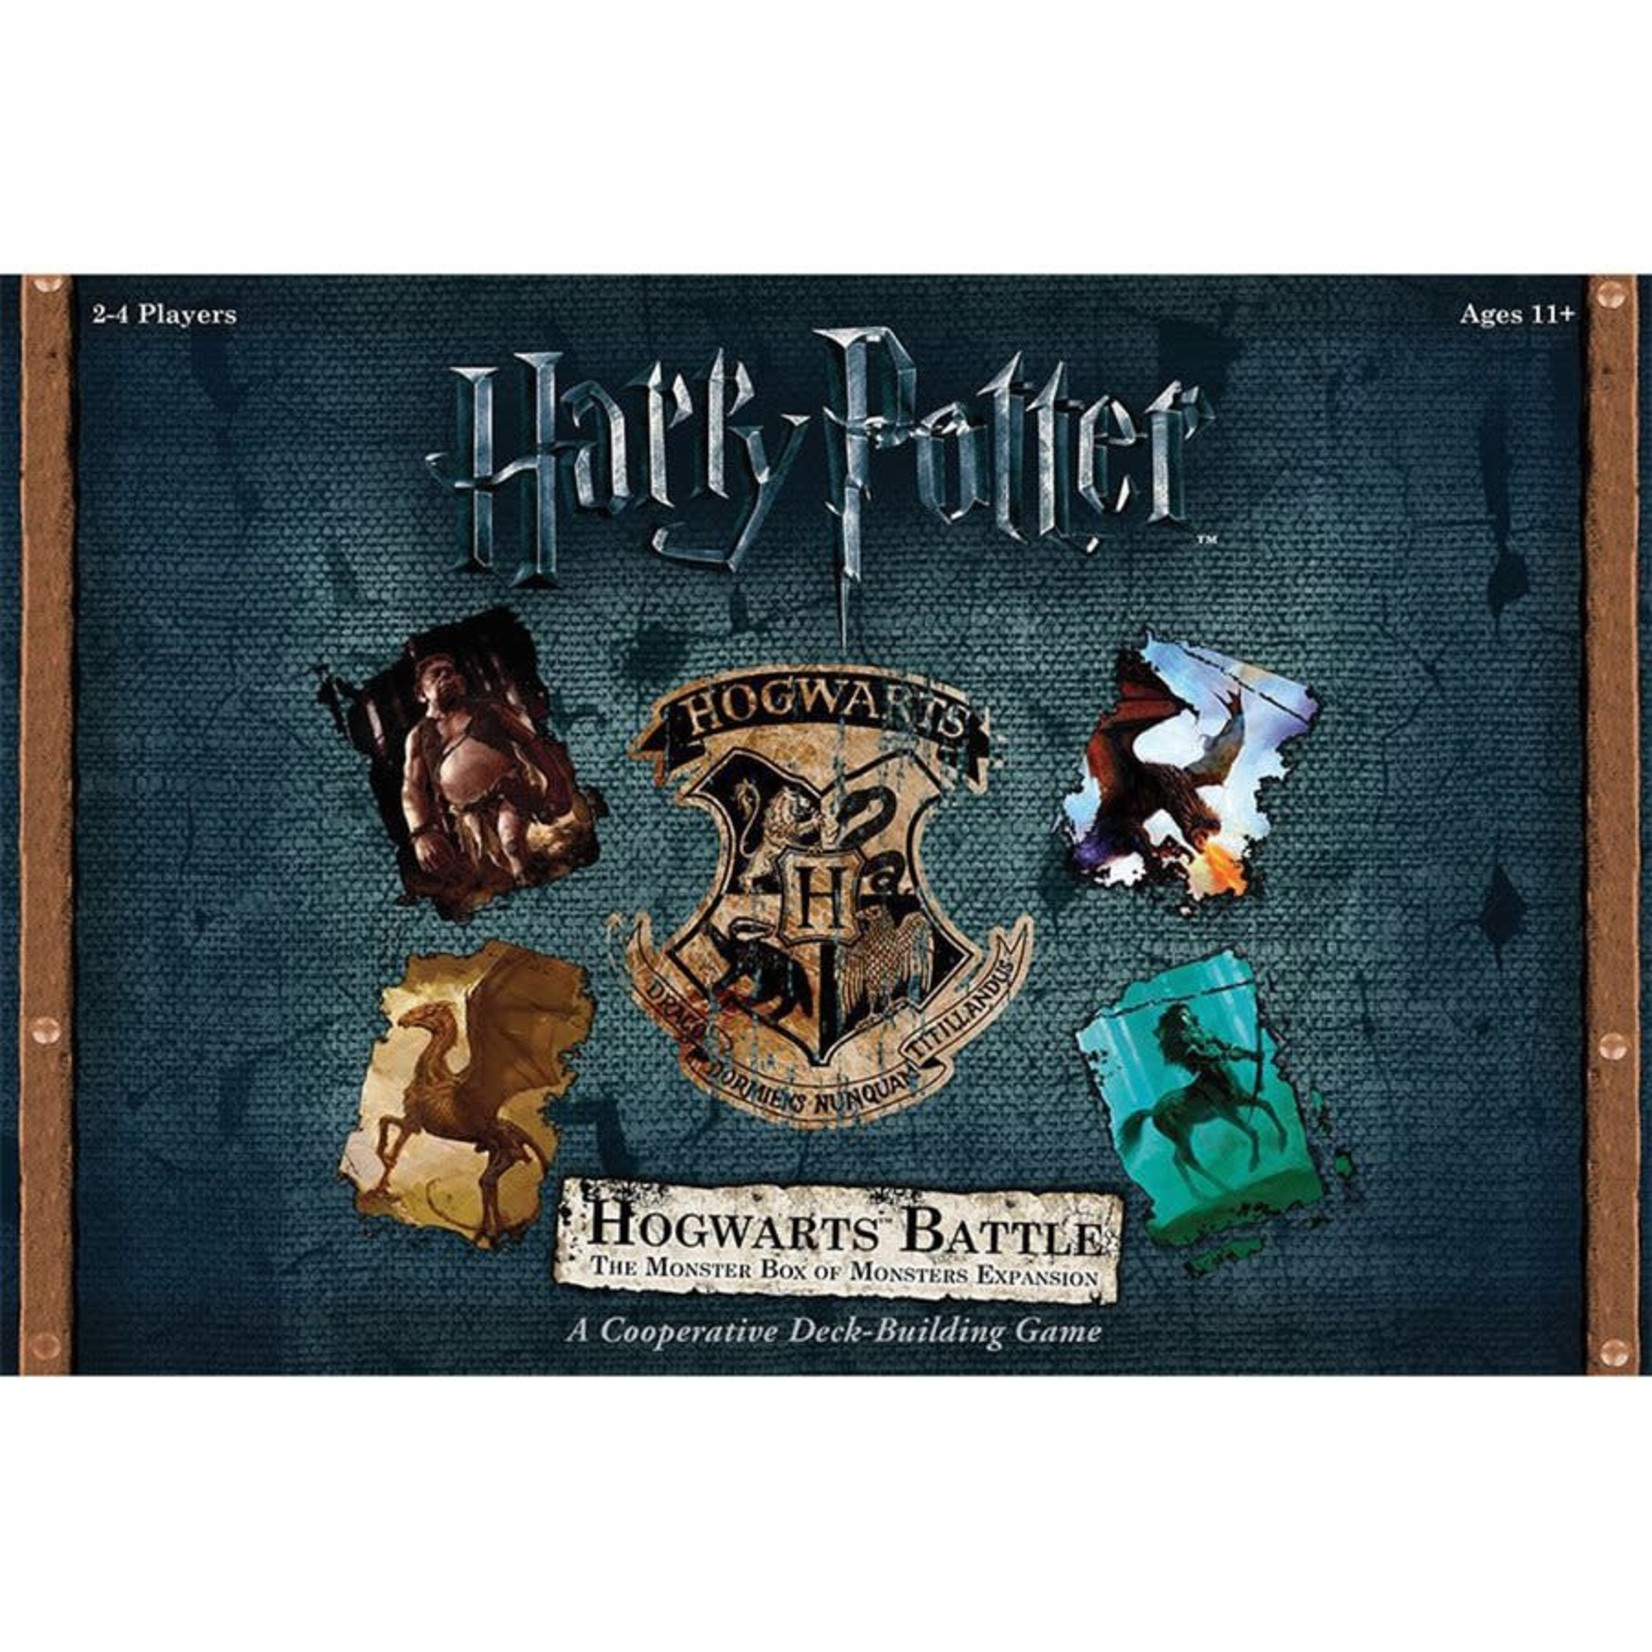 USAopoly Harry Potters Hogwarts Battle : The Monster box of Monsters